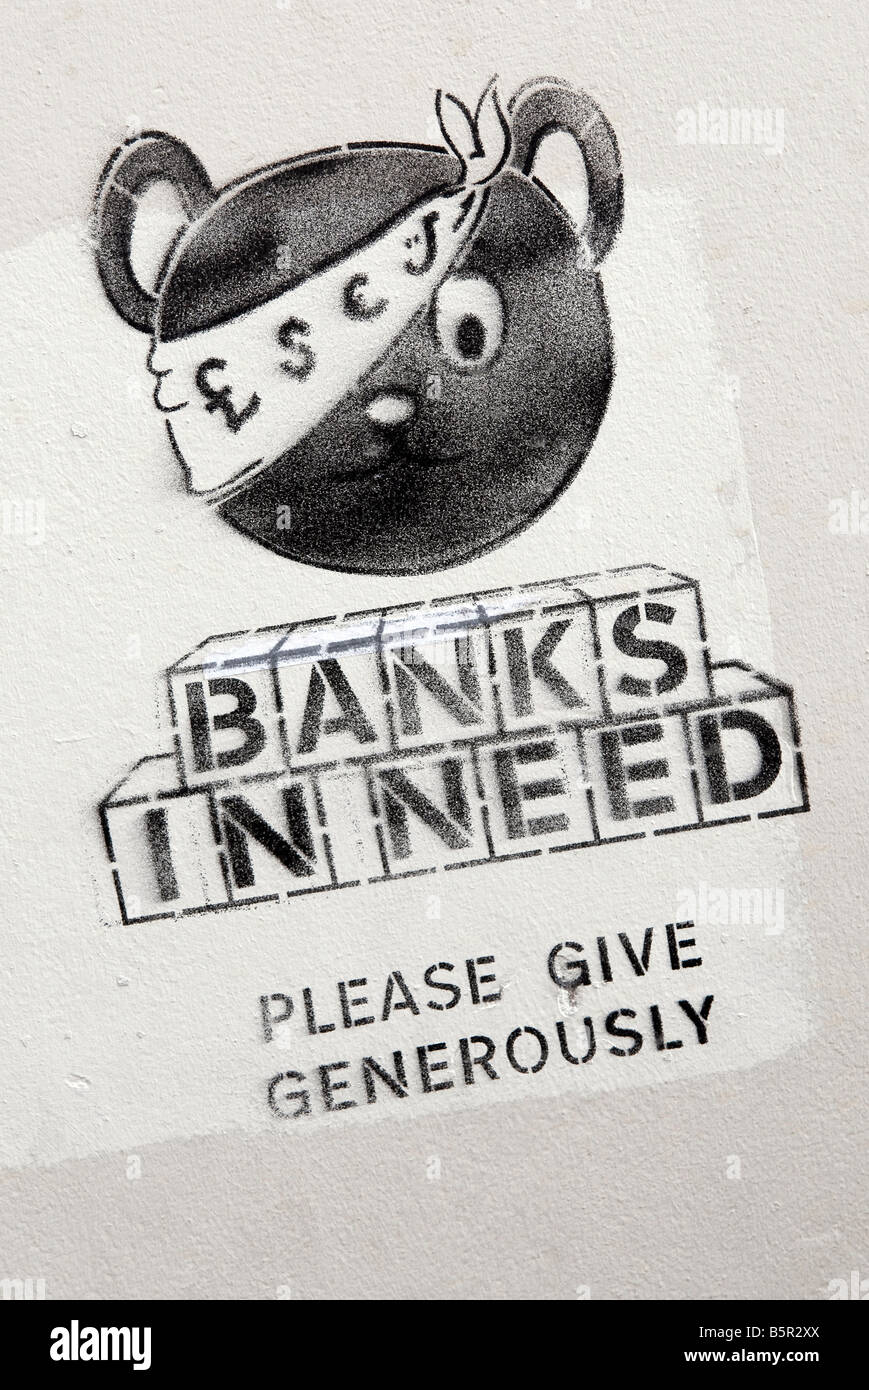 banks in need wall poster - Stock Image